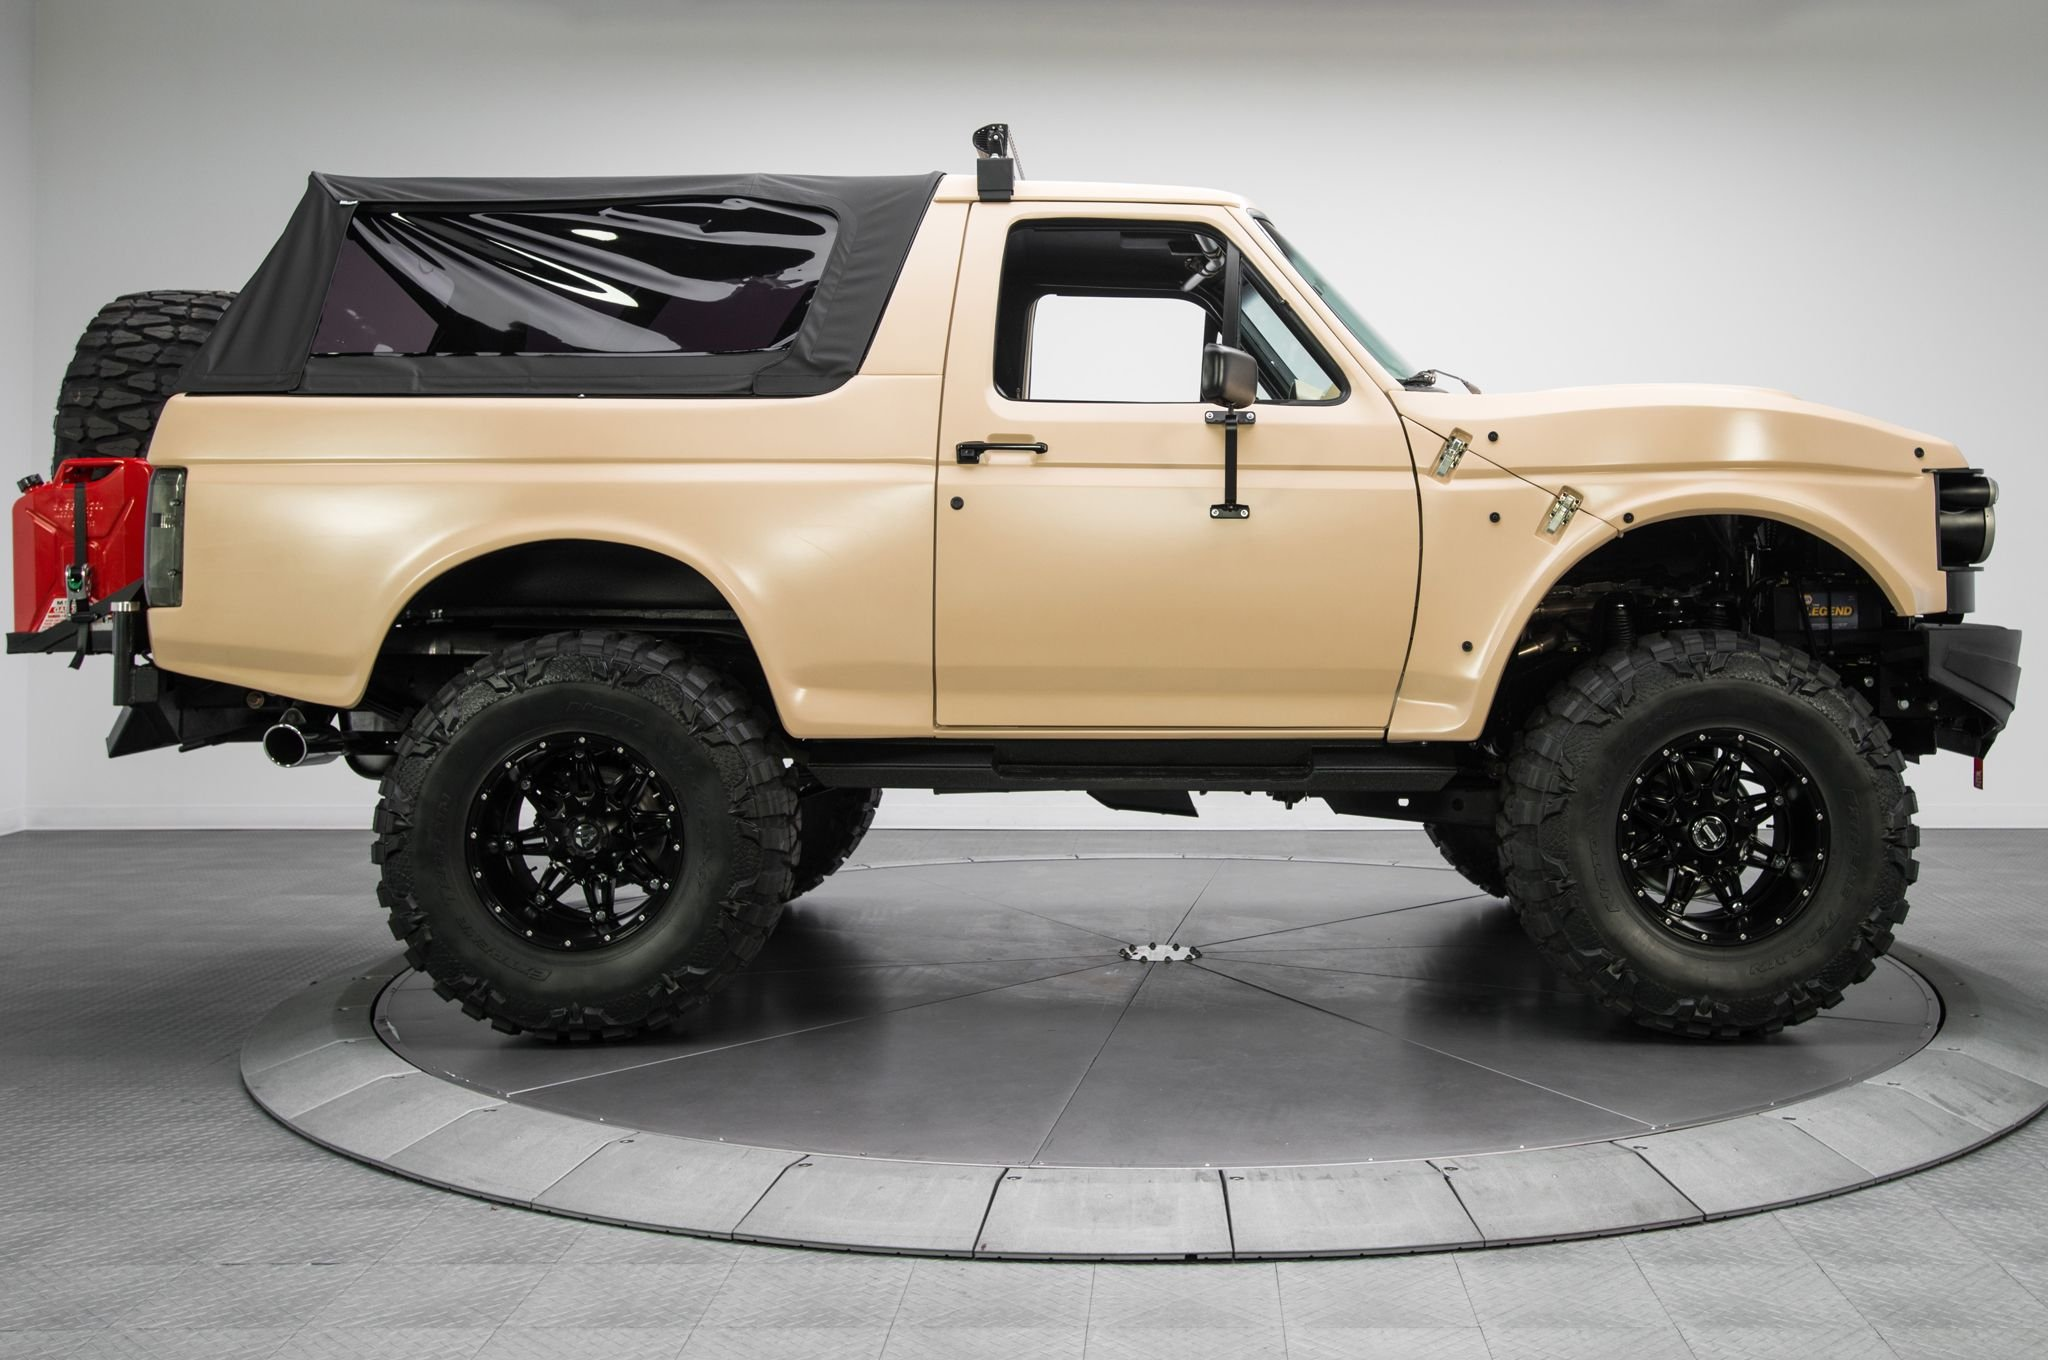 FORD BRONCO suv 4x4 truck wallpaper 2048x1360 775509 WallpaperUP 2048x1360